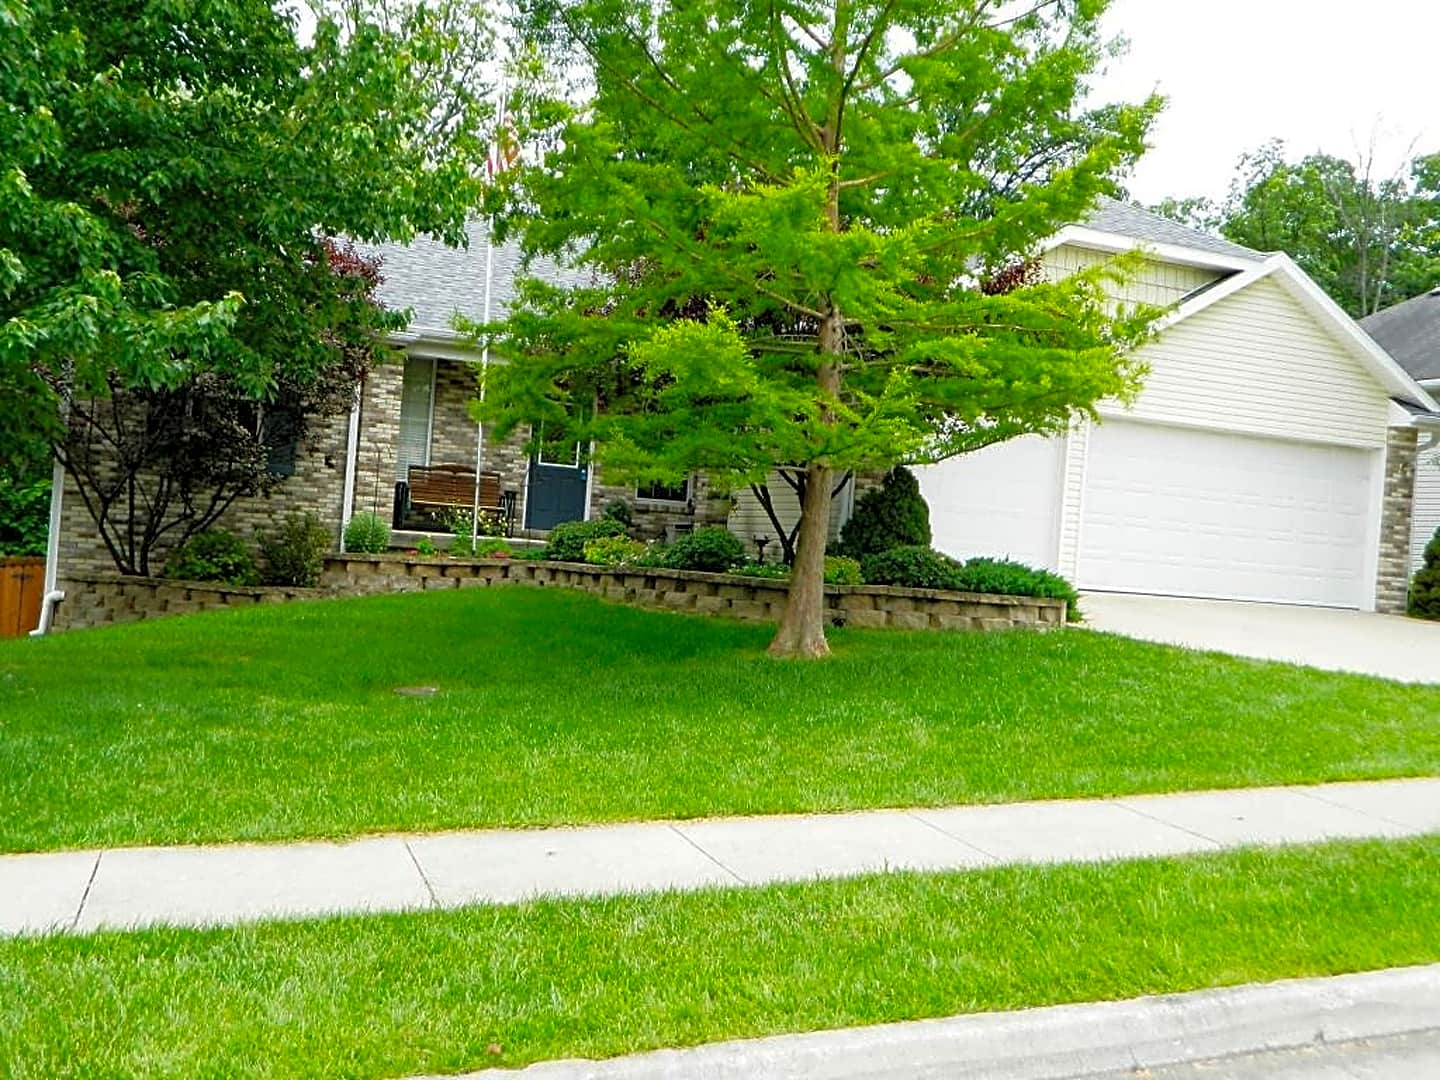 608 adens woods court apartments columbia mo 65201 for Columbia woods